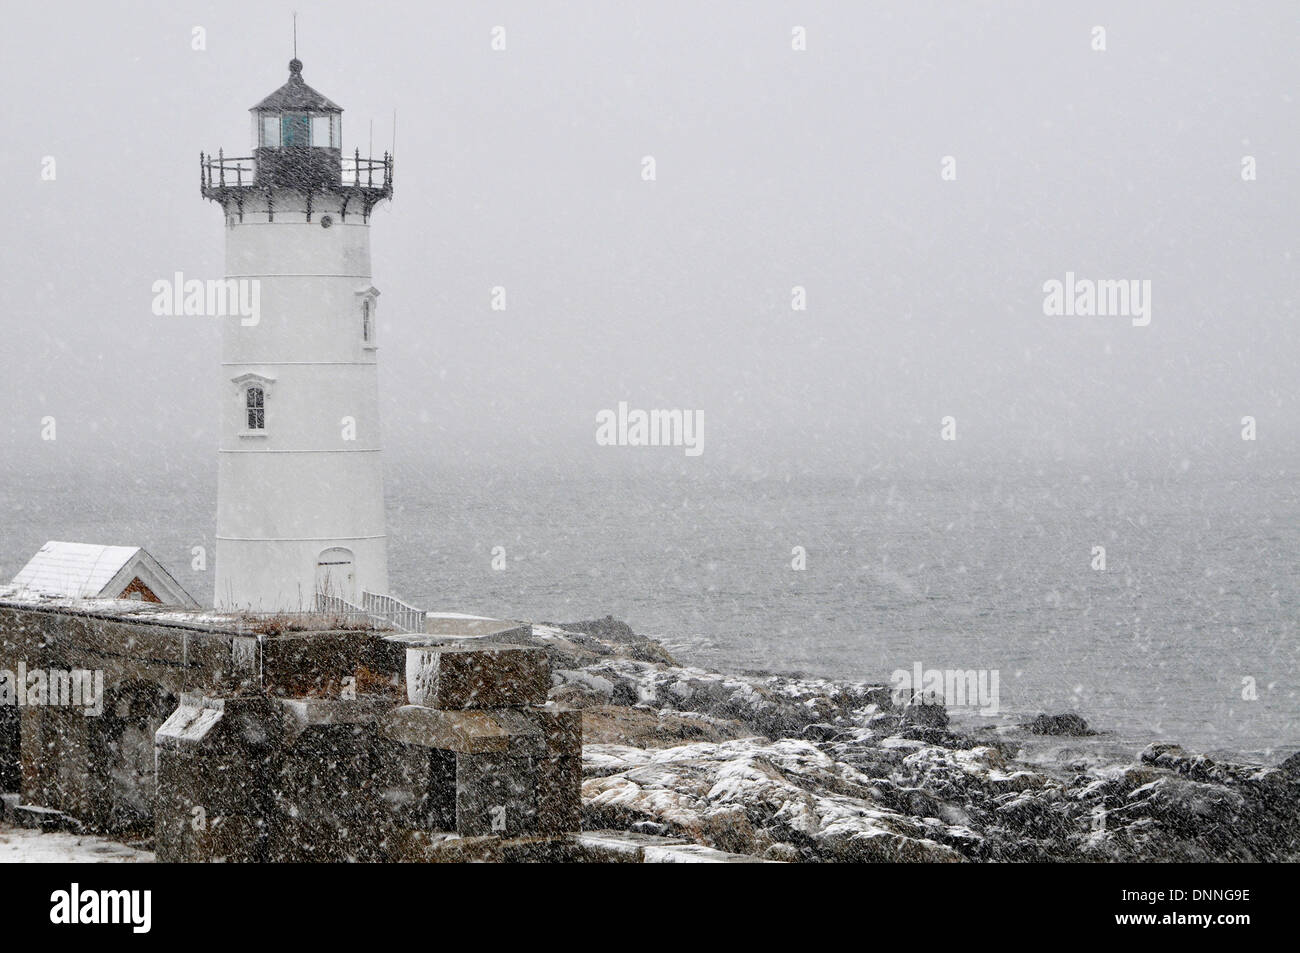 Portsmouth Harbor lighthouse in snowstorm on the New Hampshire coast. - Stock Image